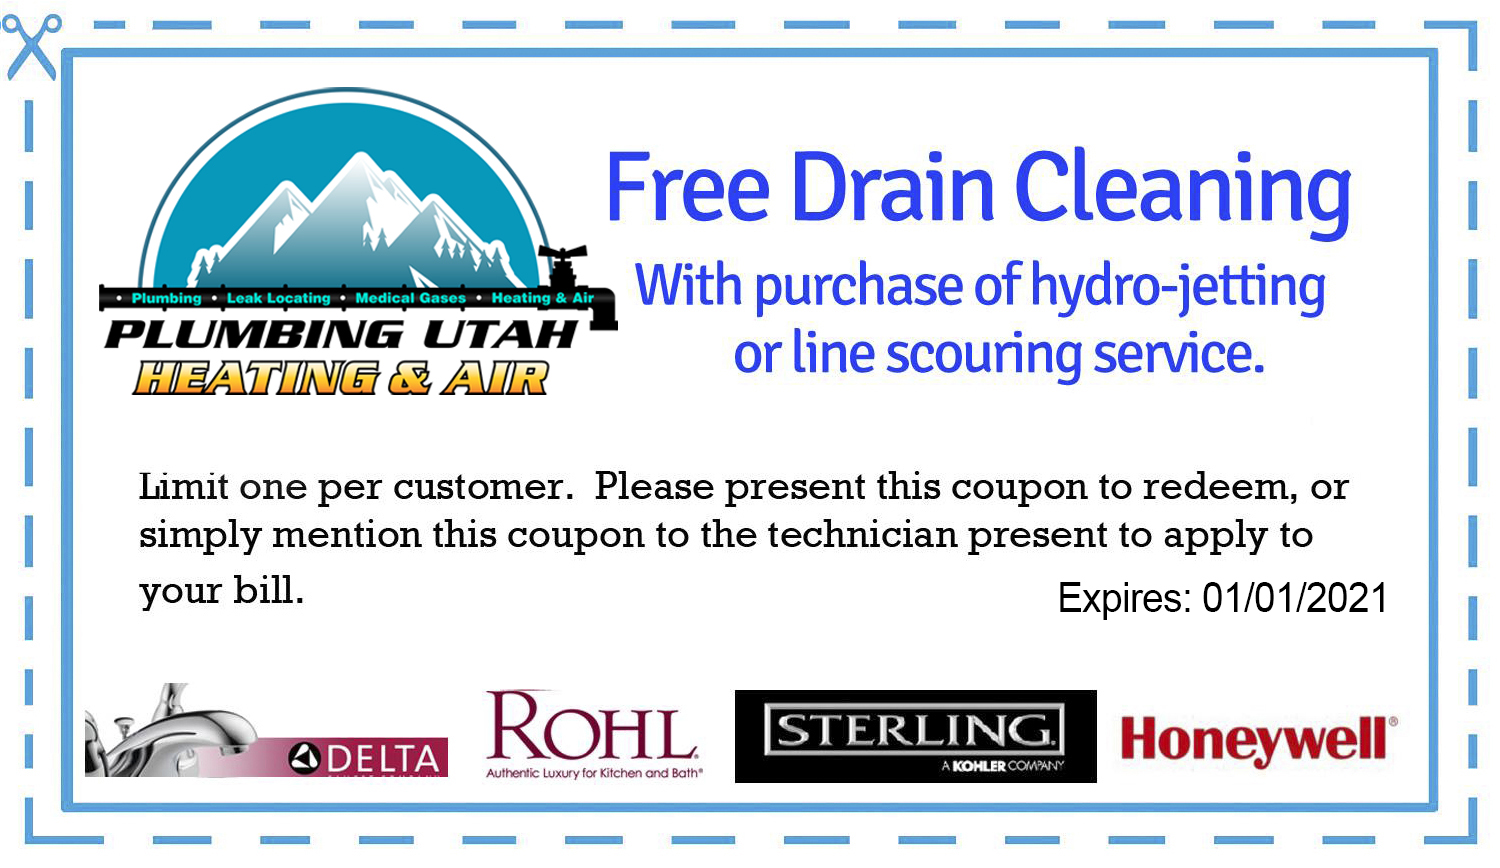 plumbing-utah-hvac-coupon-free-drain-cleaning